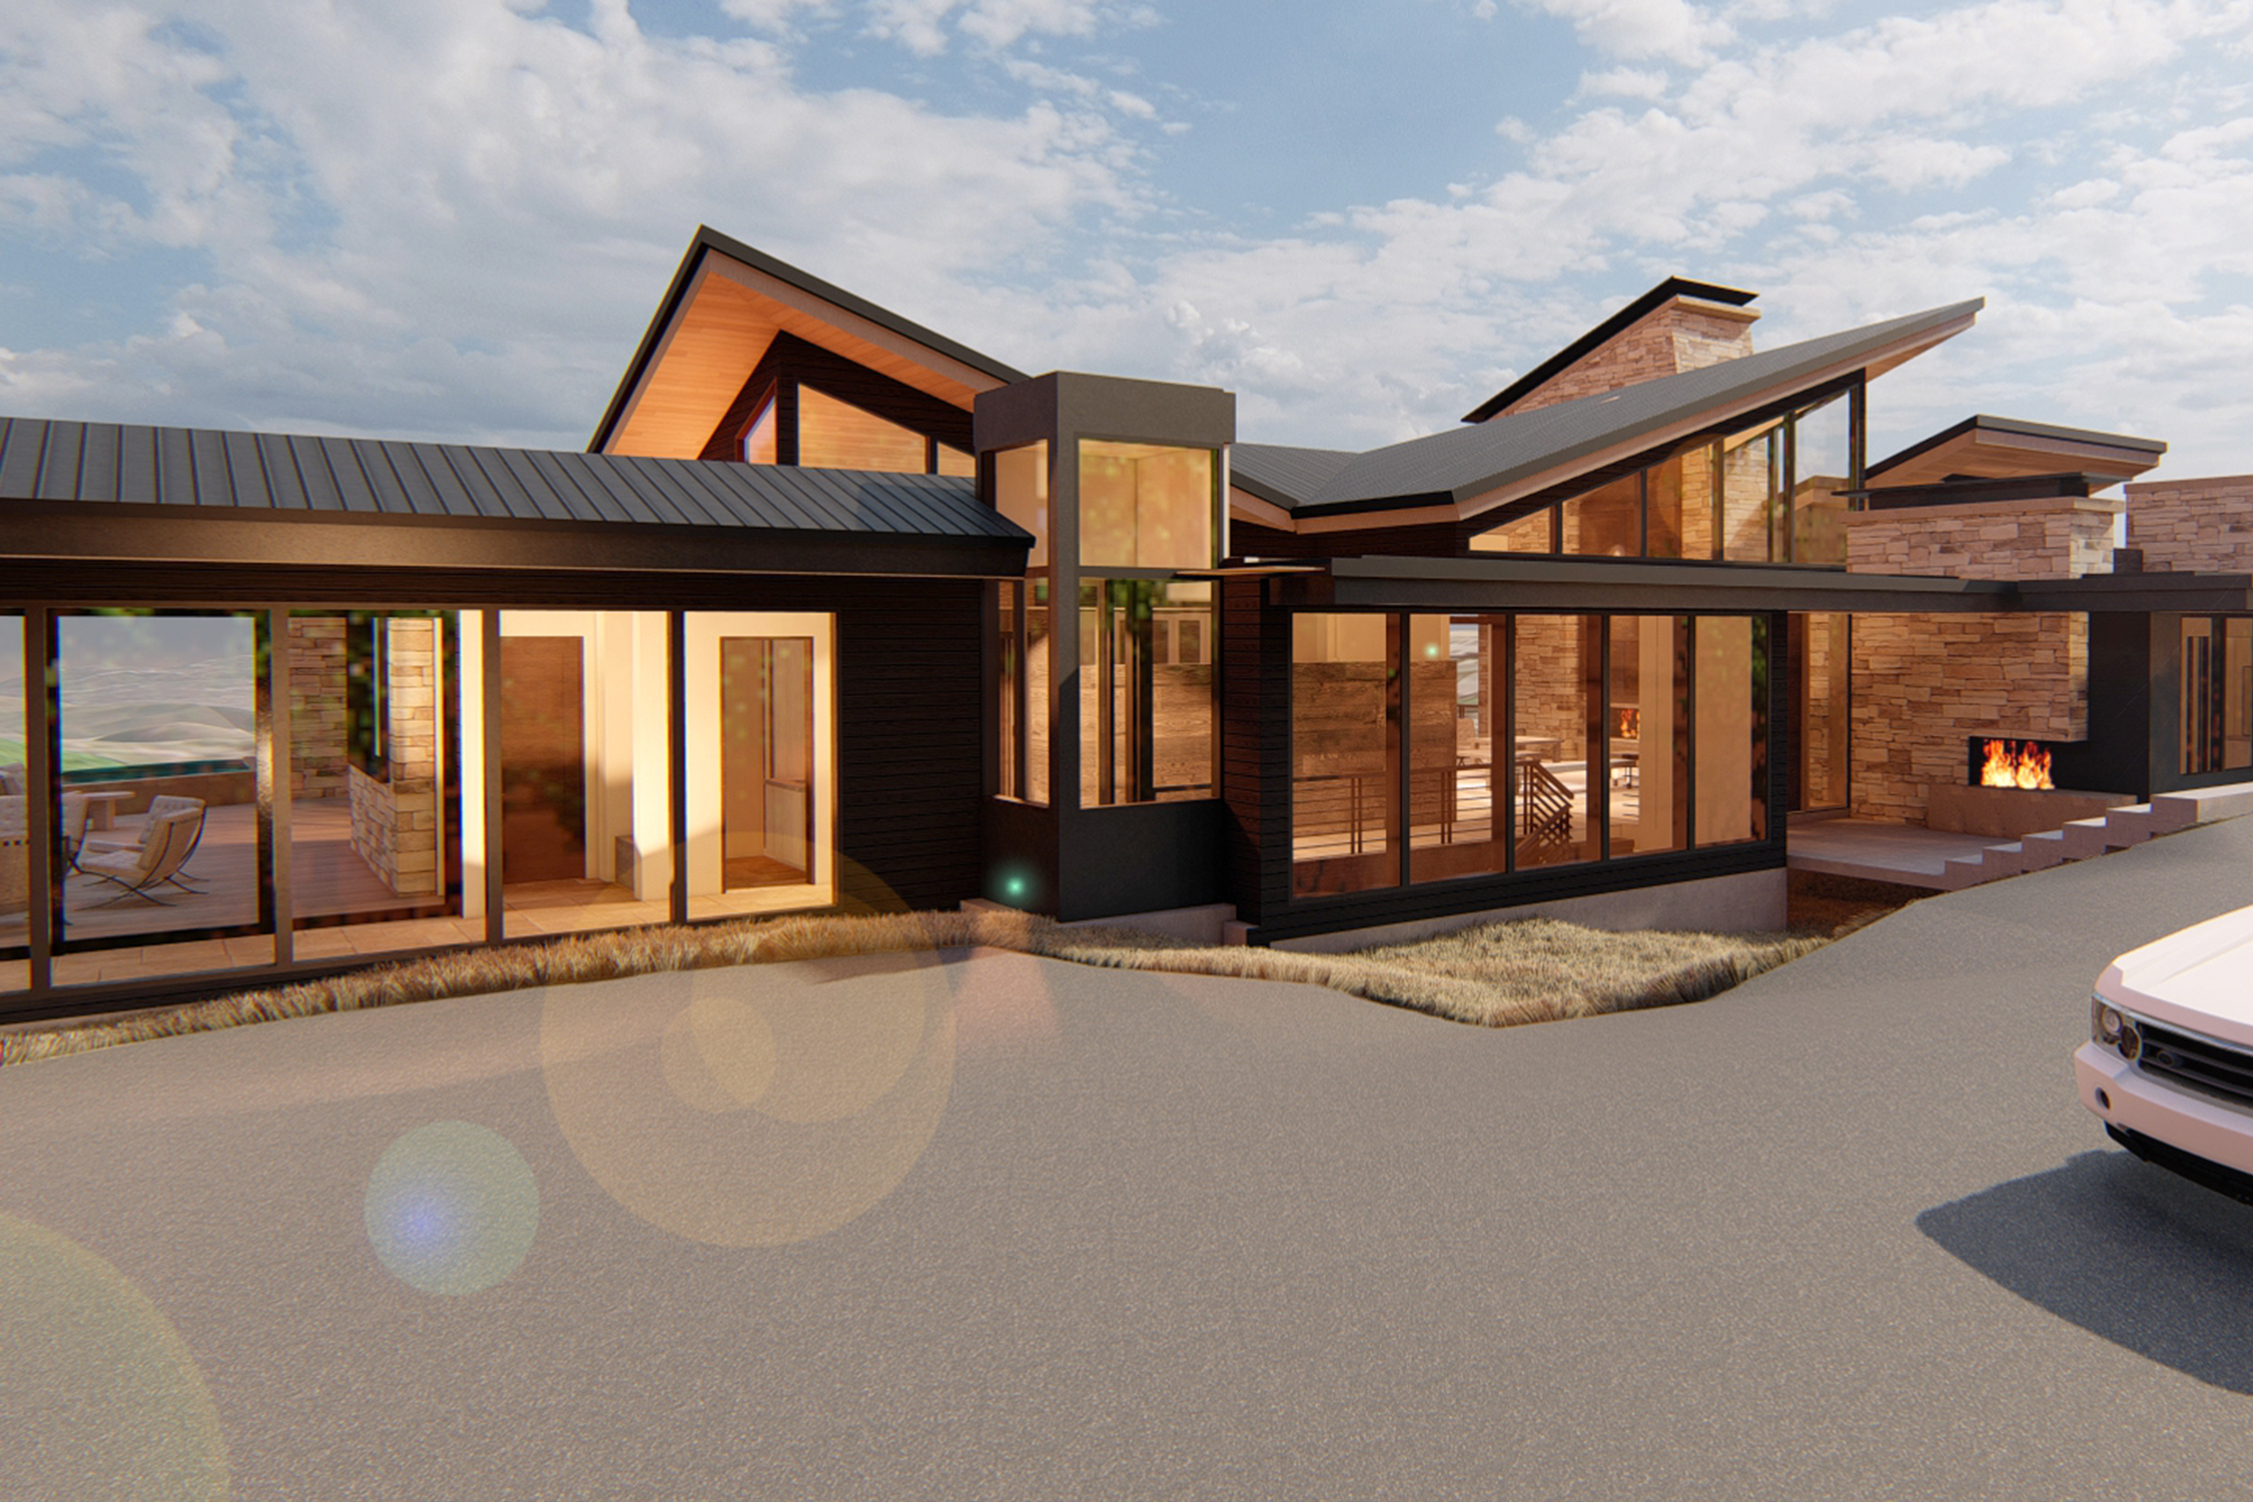 Park City Residence Rendering Exterior Entry Perspective